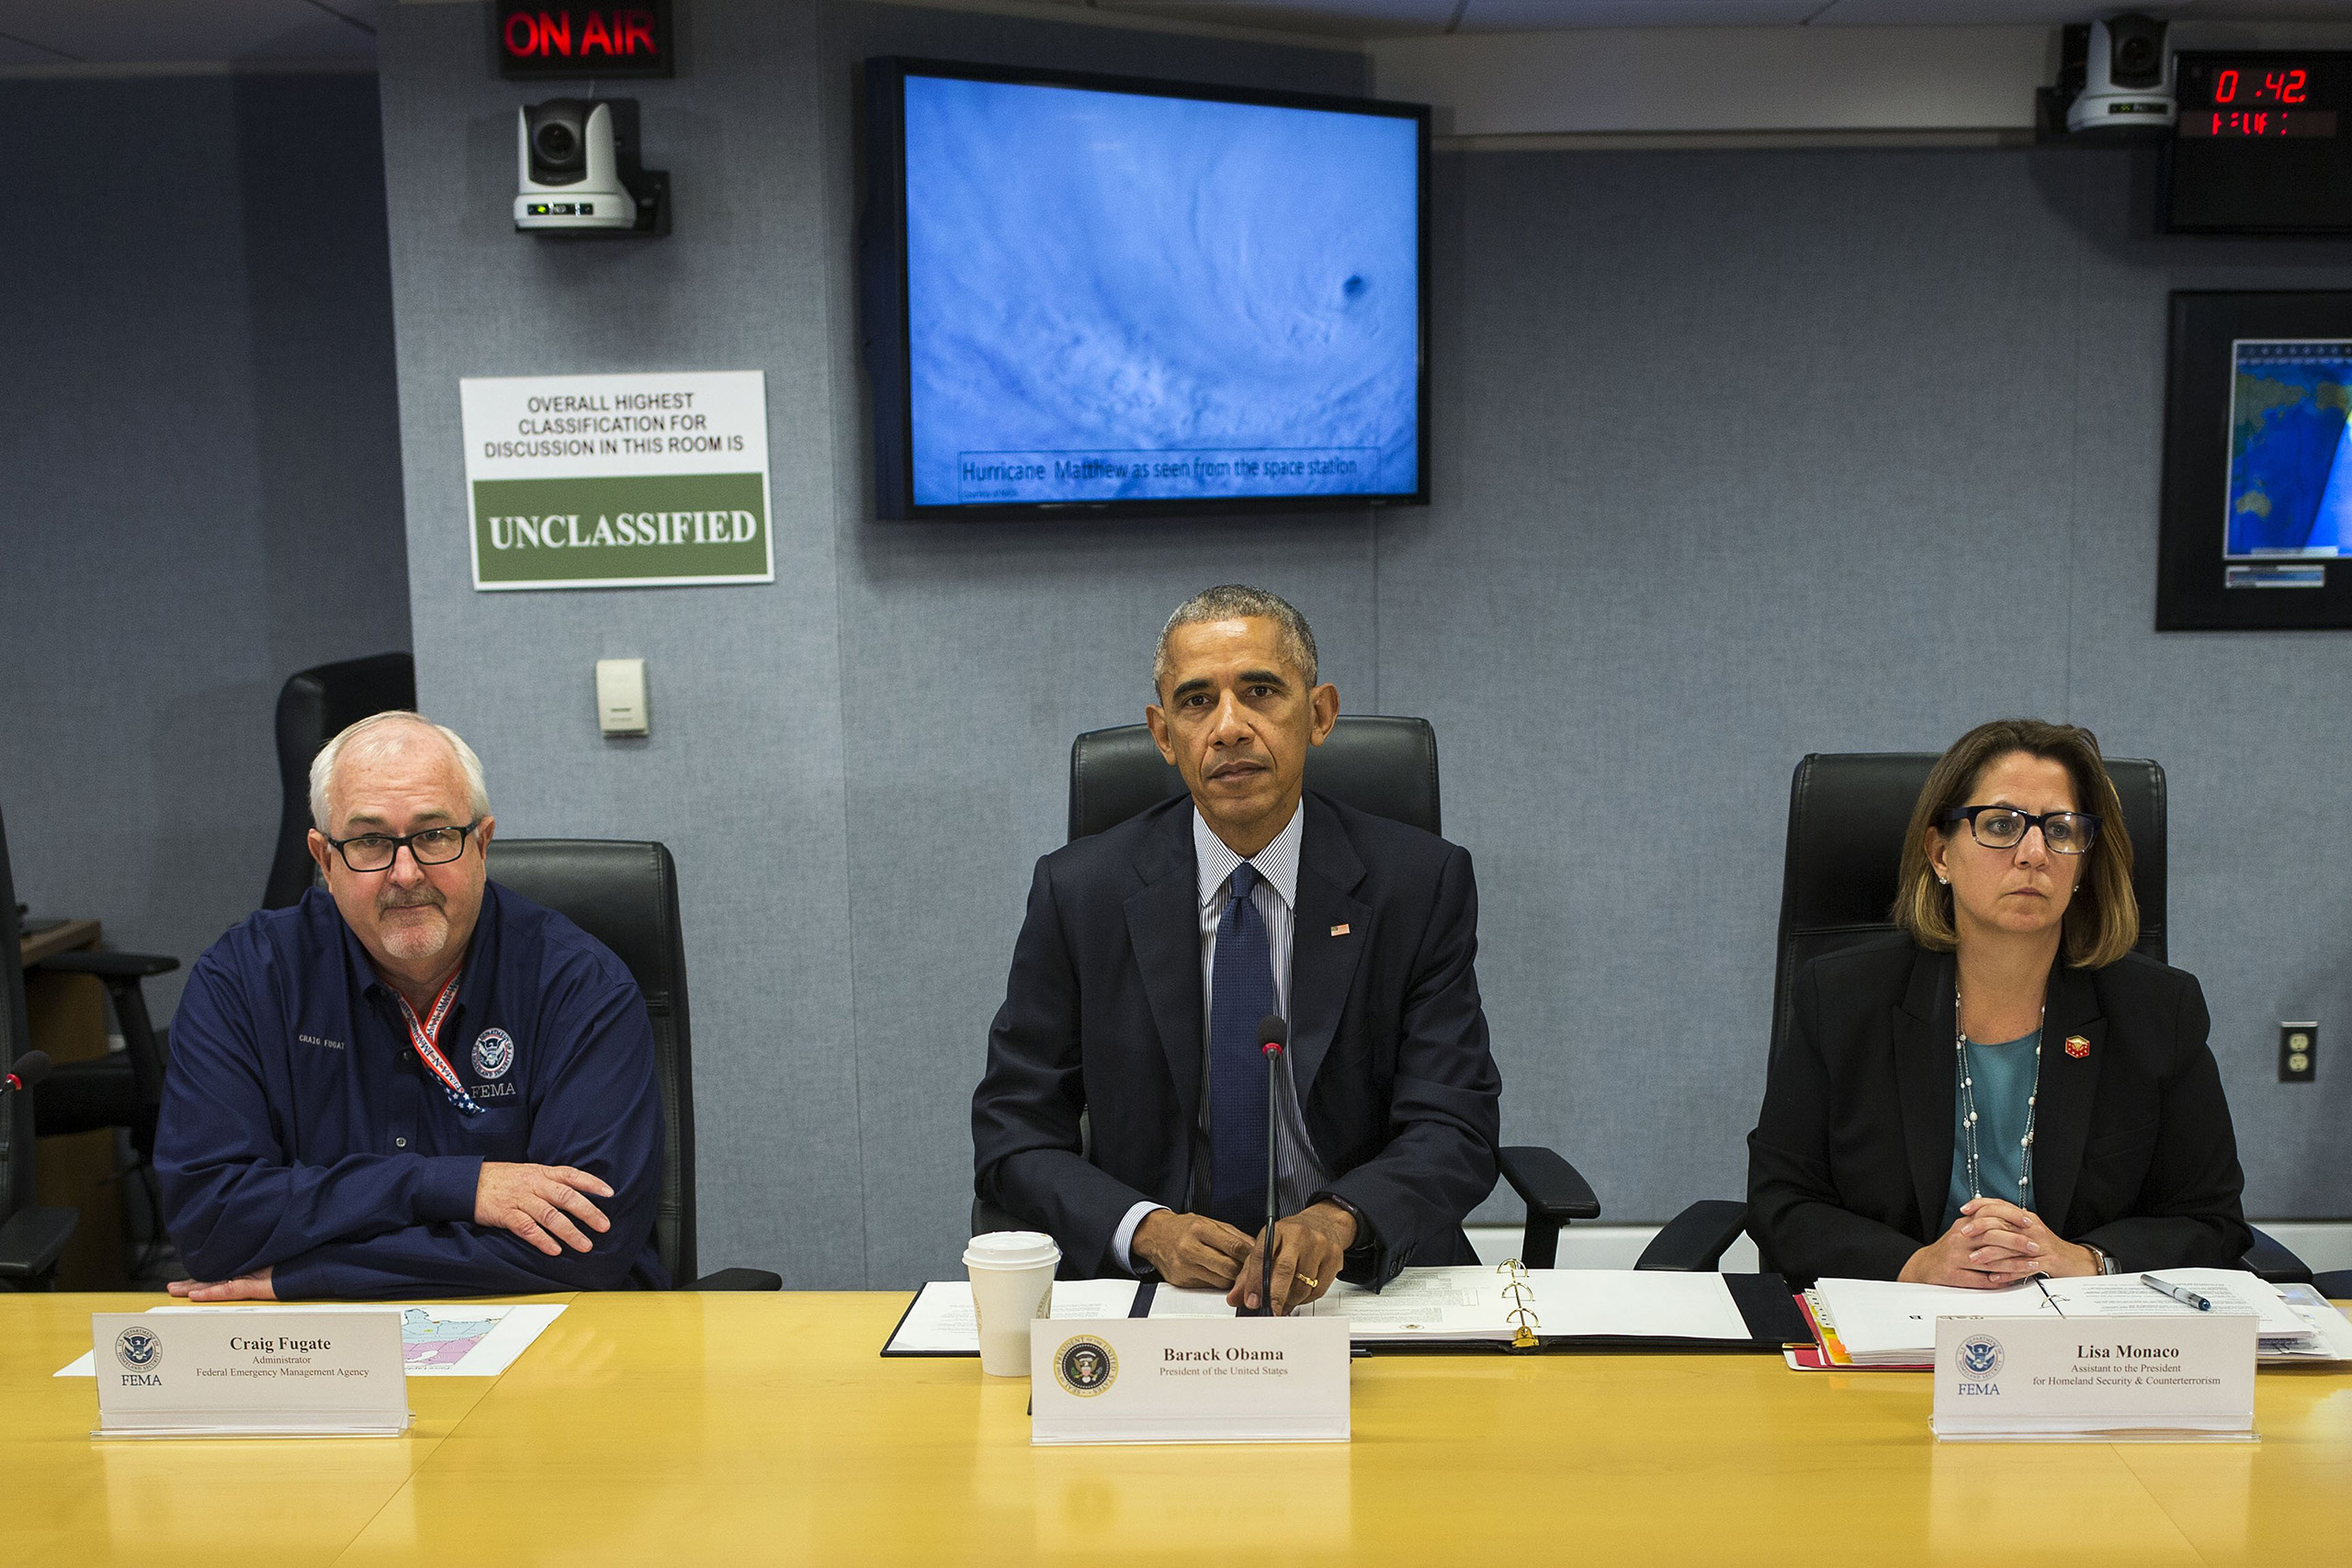 Barack Obama attends a briefing about Hurricane Matthew, at the FEMA headquarters in Washington, Oct. 5, 2016.